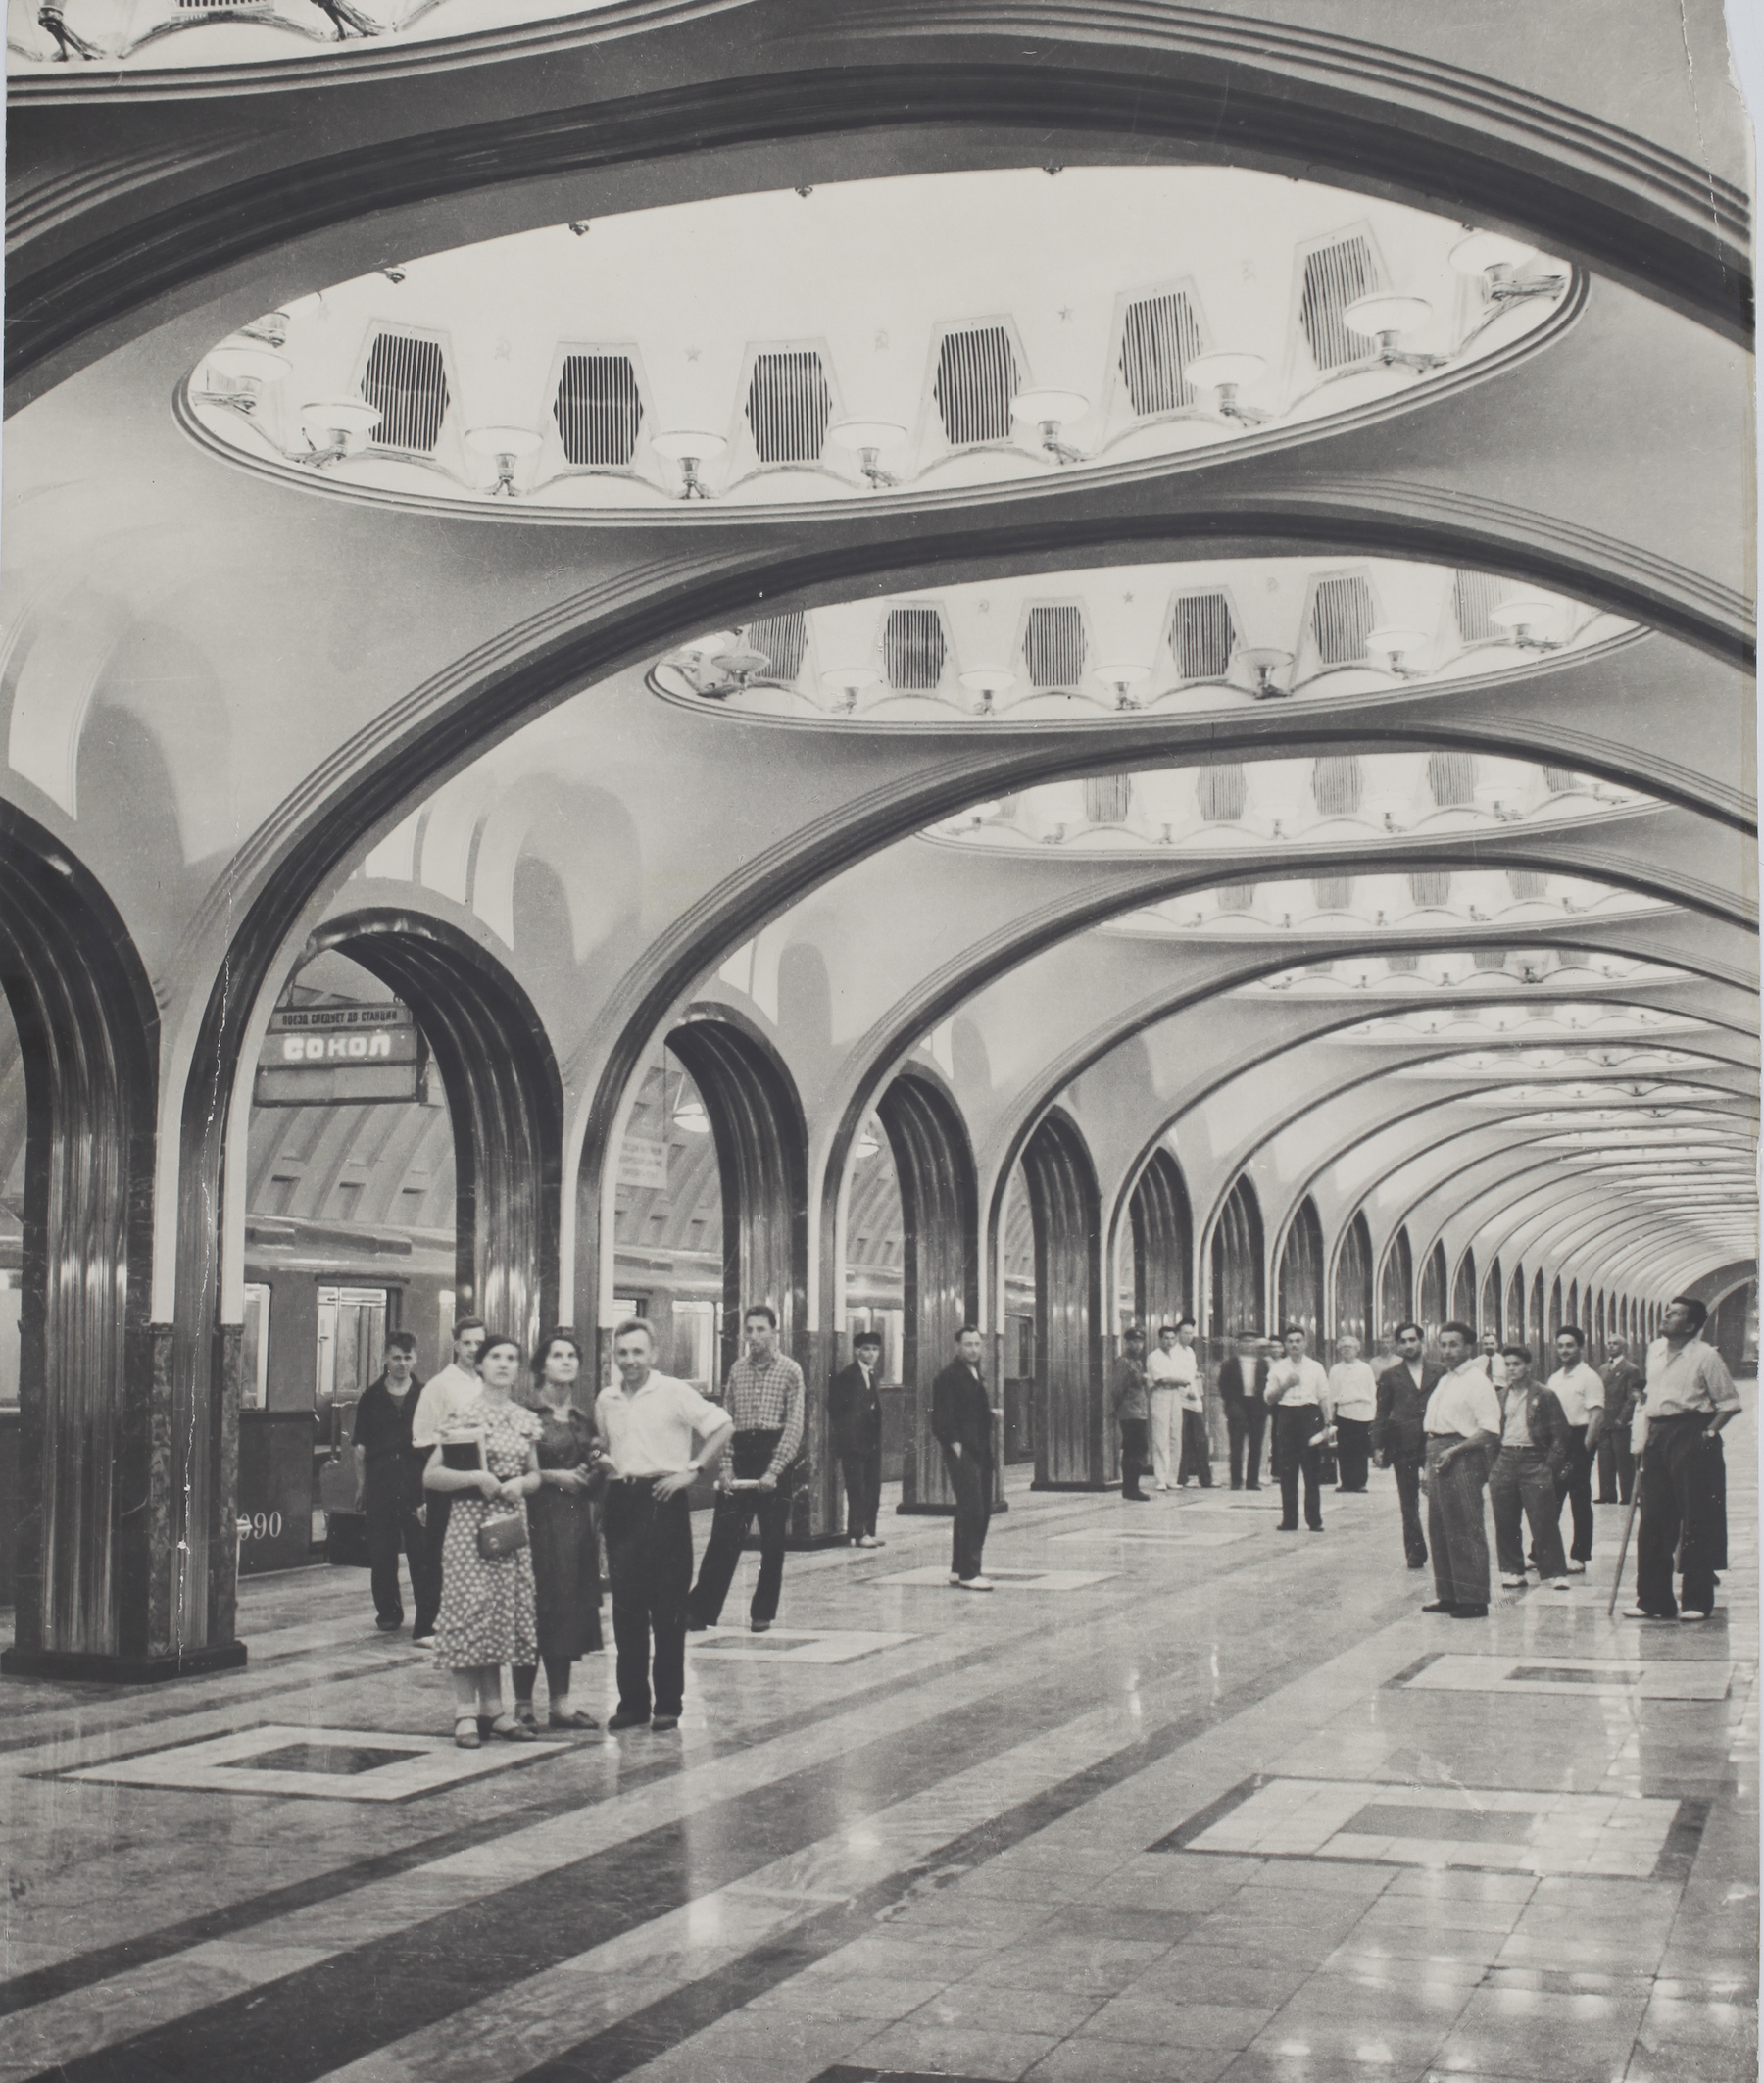 Mayakovsky Station (shown here after completion) was named after the futurist poet, Vladimir Mayakovsky. It is a favorite of Andrews